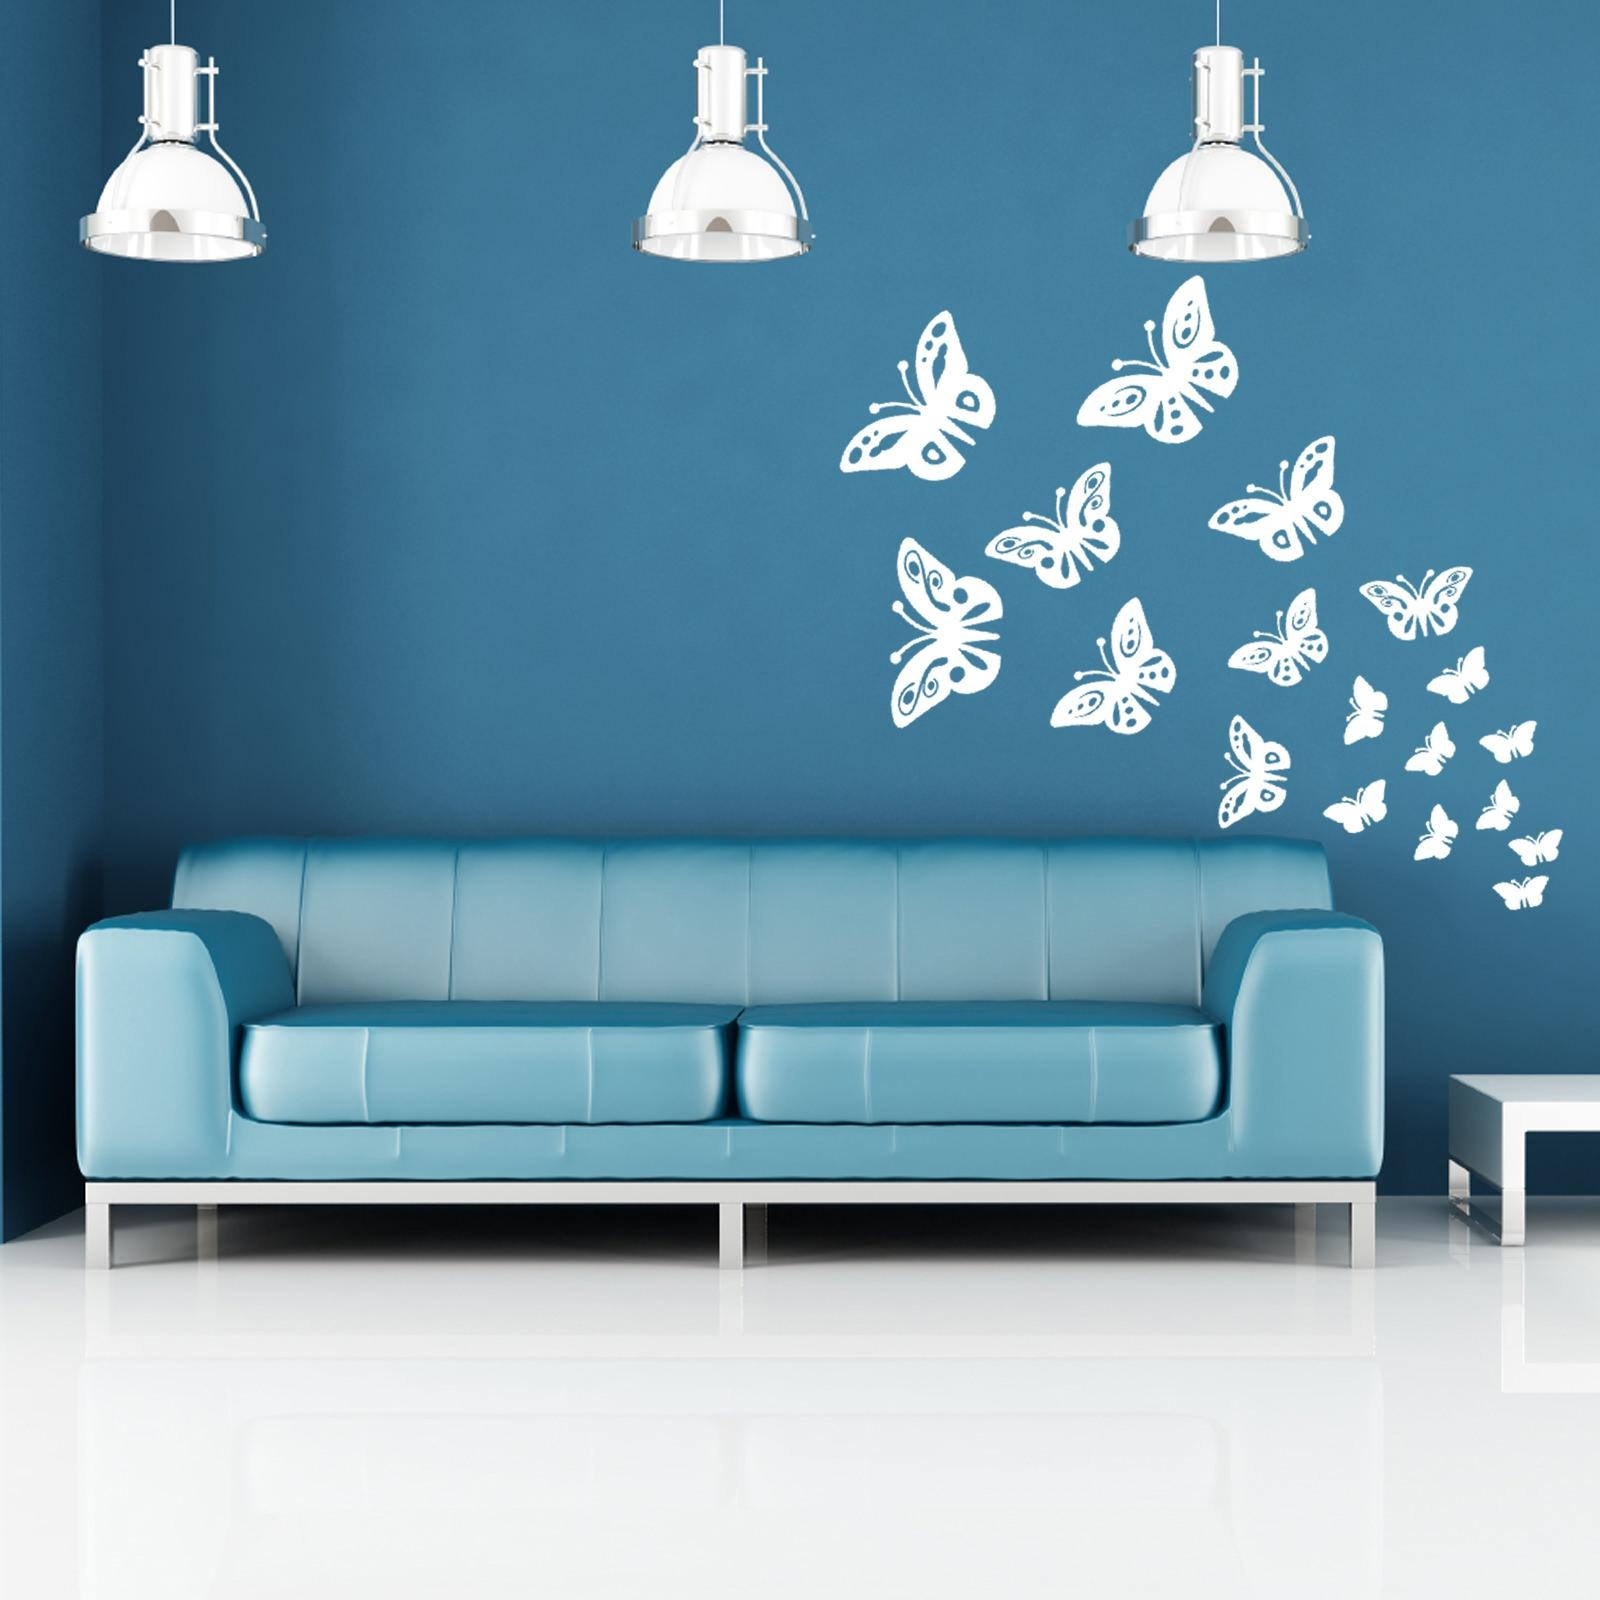 Related ideas wall art designs with paper Wall art paper designs